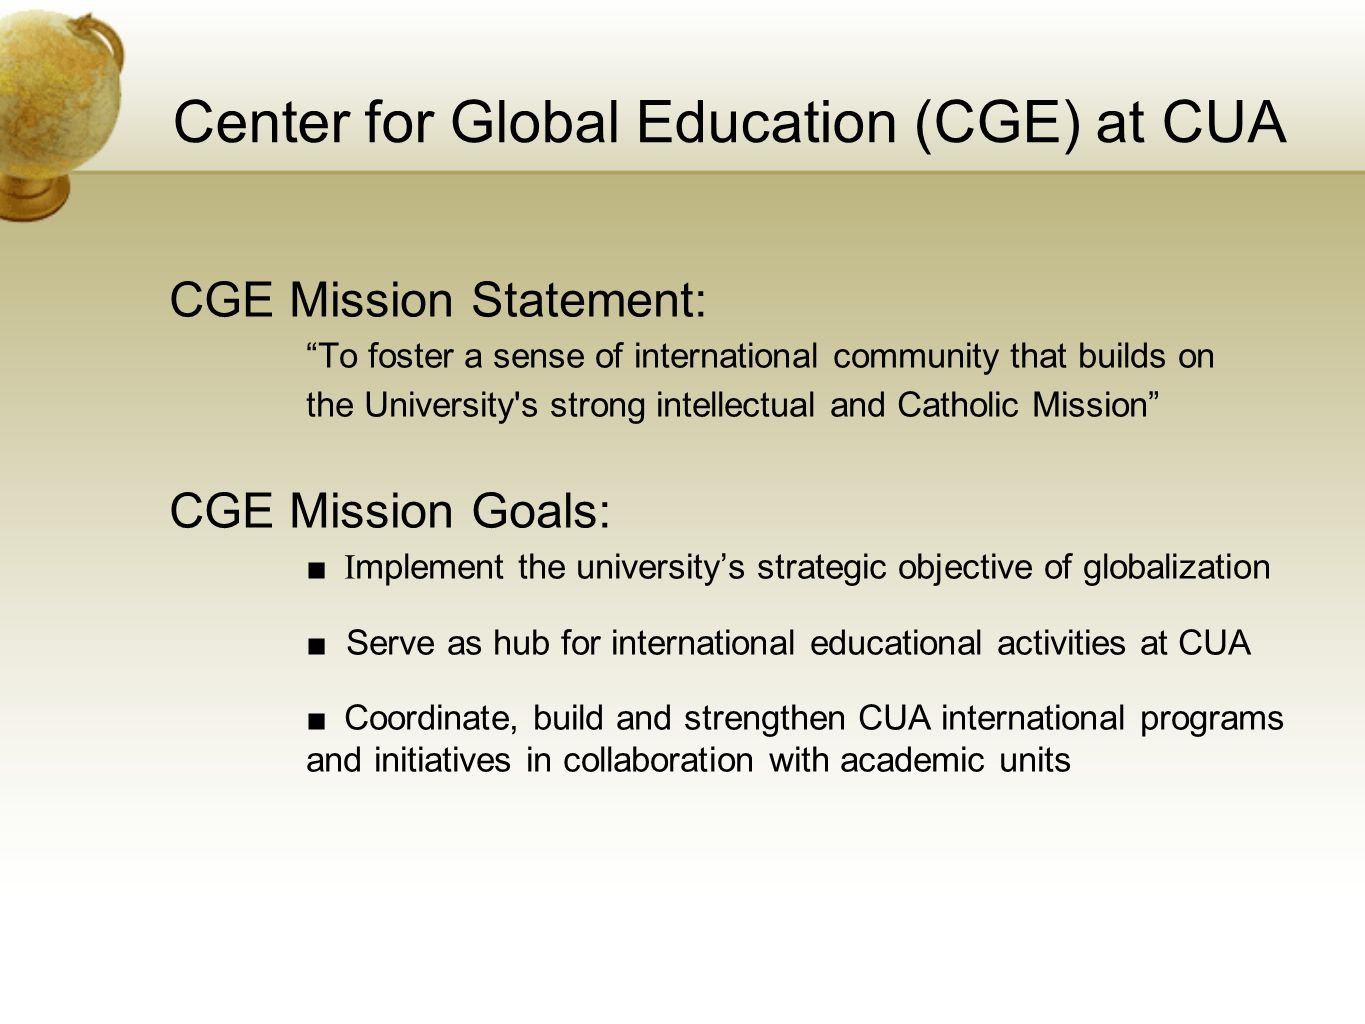 Center for Global Education (CGE) at CUA CGE Mission Statement: To foster a sense of international community that builds on the University s strong intellectual and Catholic Mission CGE Mission Goals: ■ I mplement the university's strategic objective of globalization ■ Serve as hub for international educational activities at CUA ■ Coordinate, build and strengthen CUA international programs and initiatives in collaboration with academic units